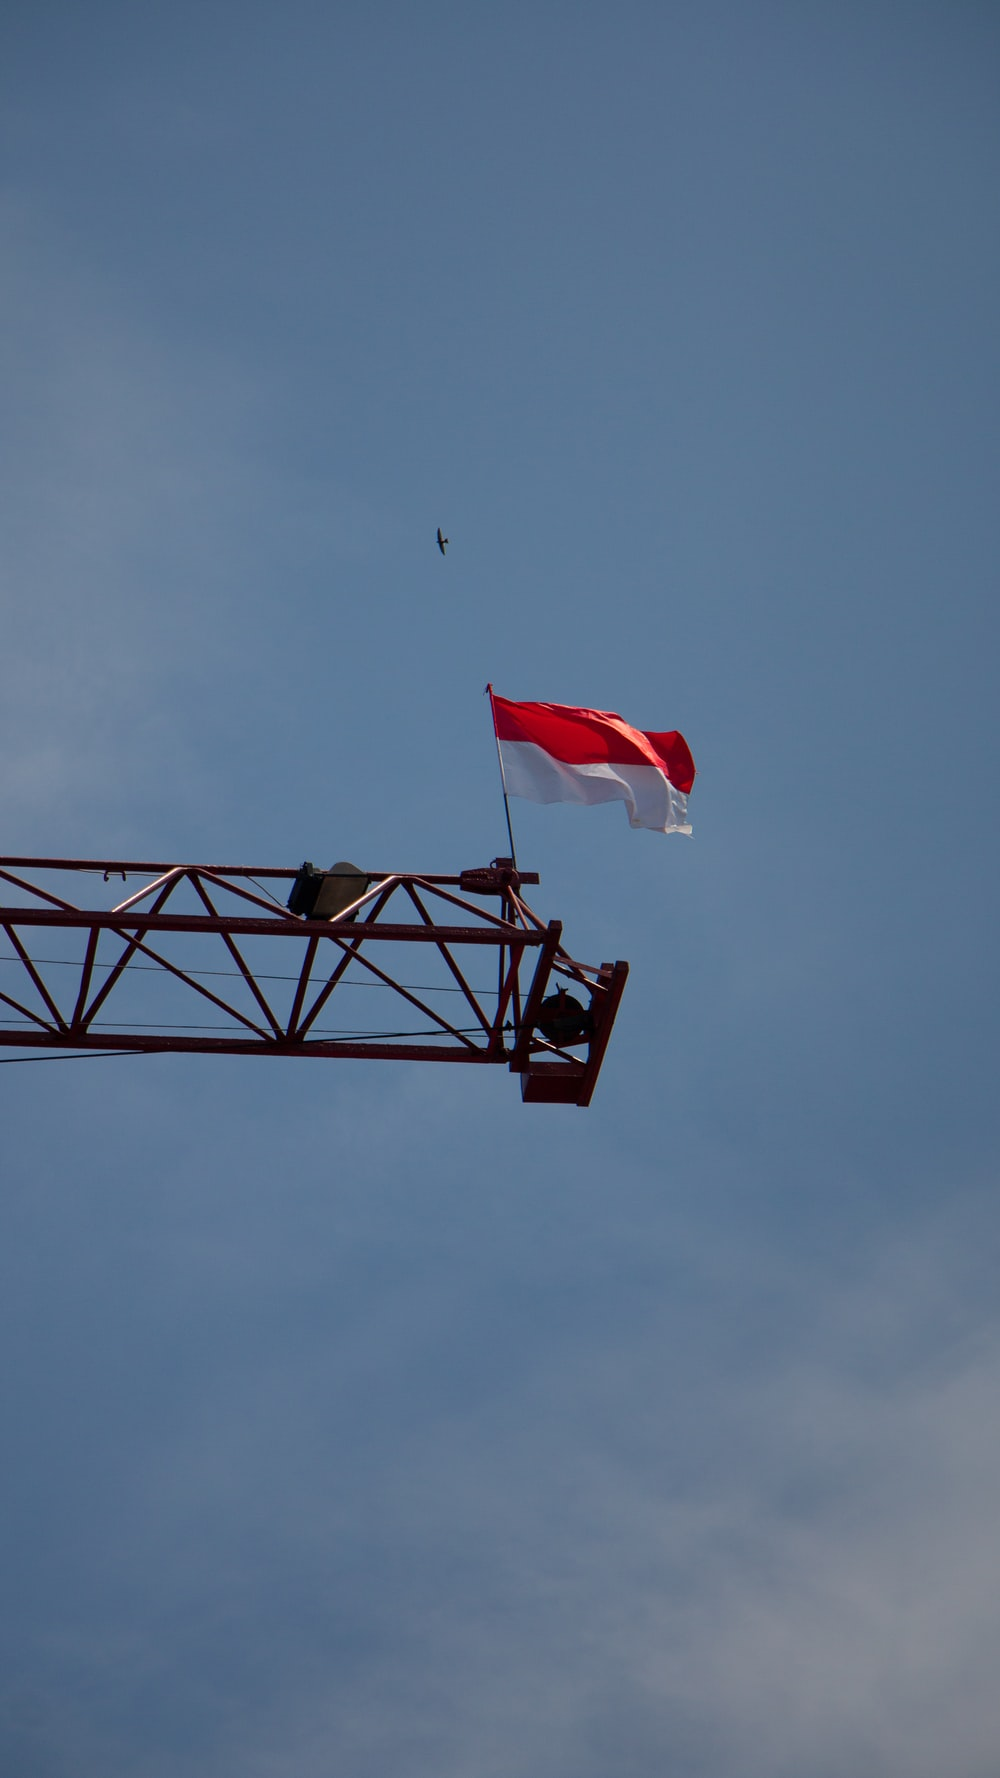 white and red flag on black metal pole under blue sky during daytime